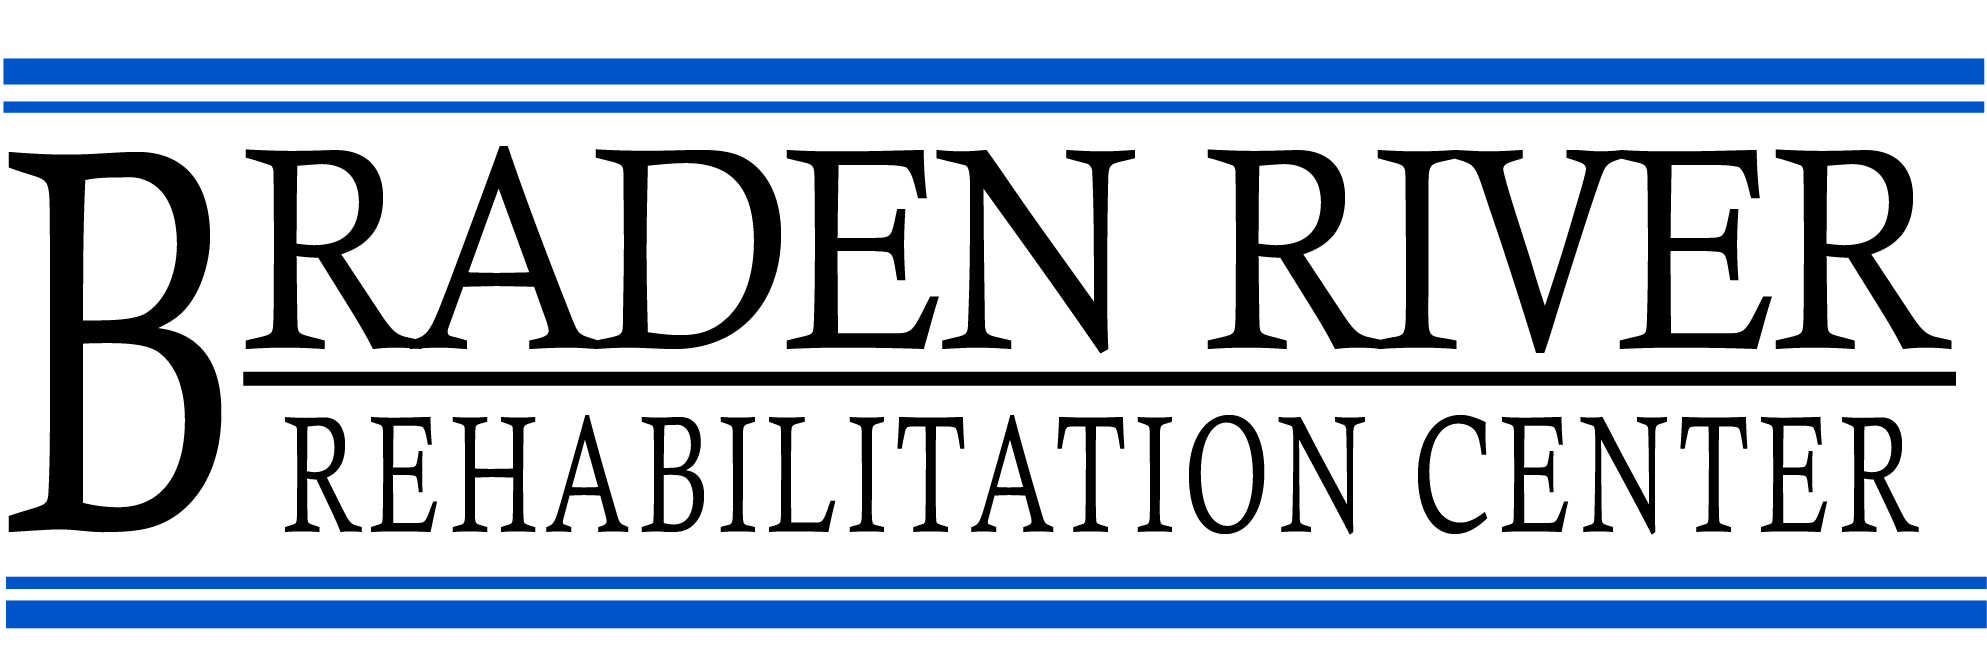 Braden River Rehabilitation Center logo